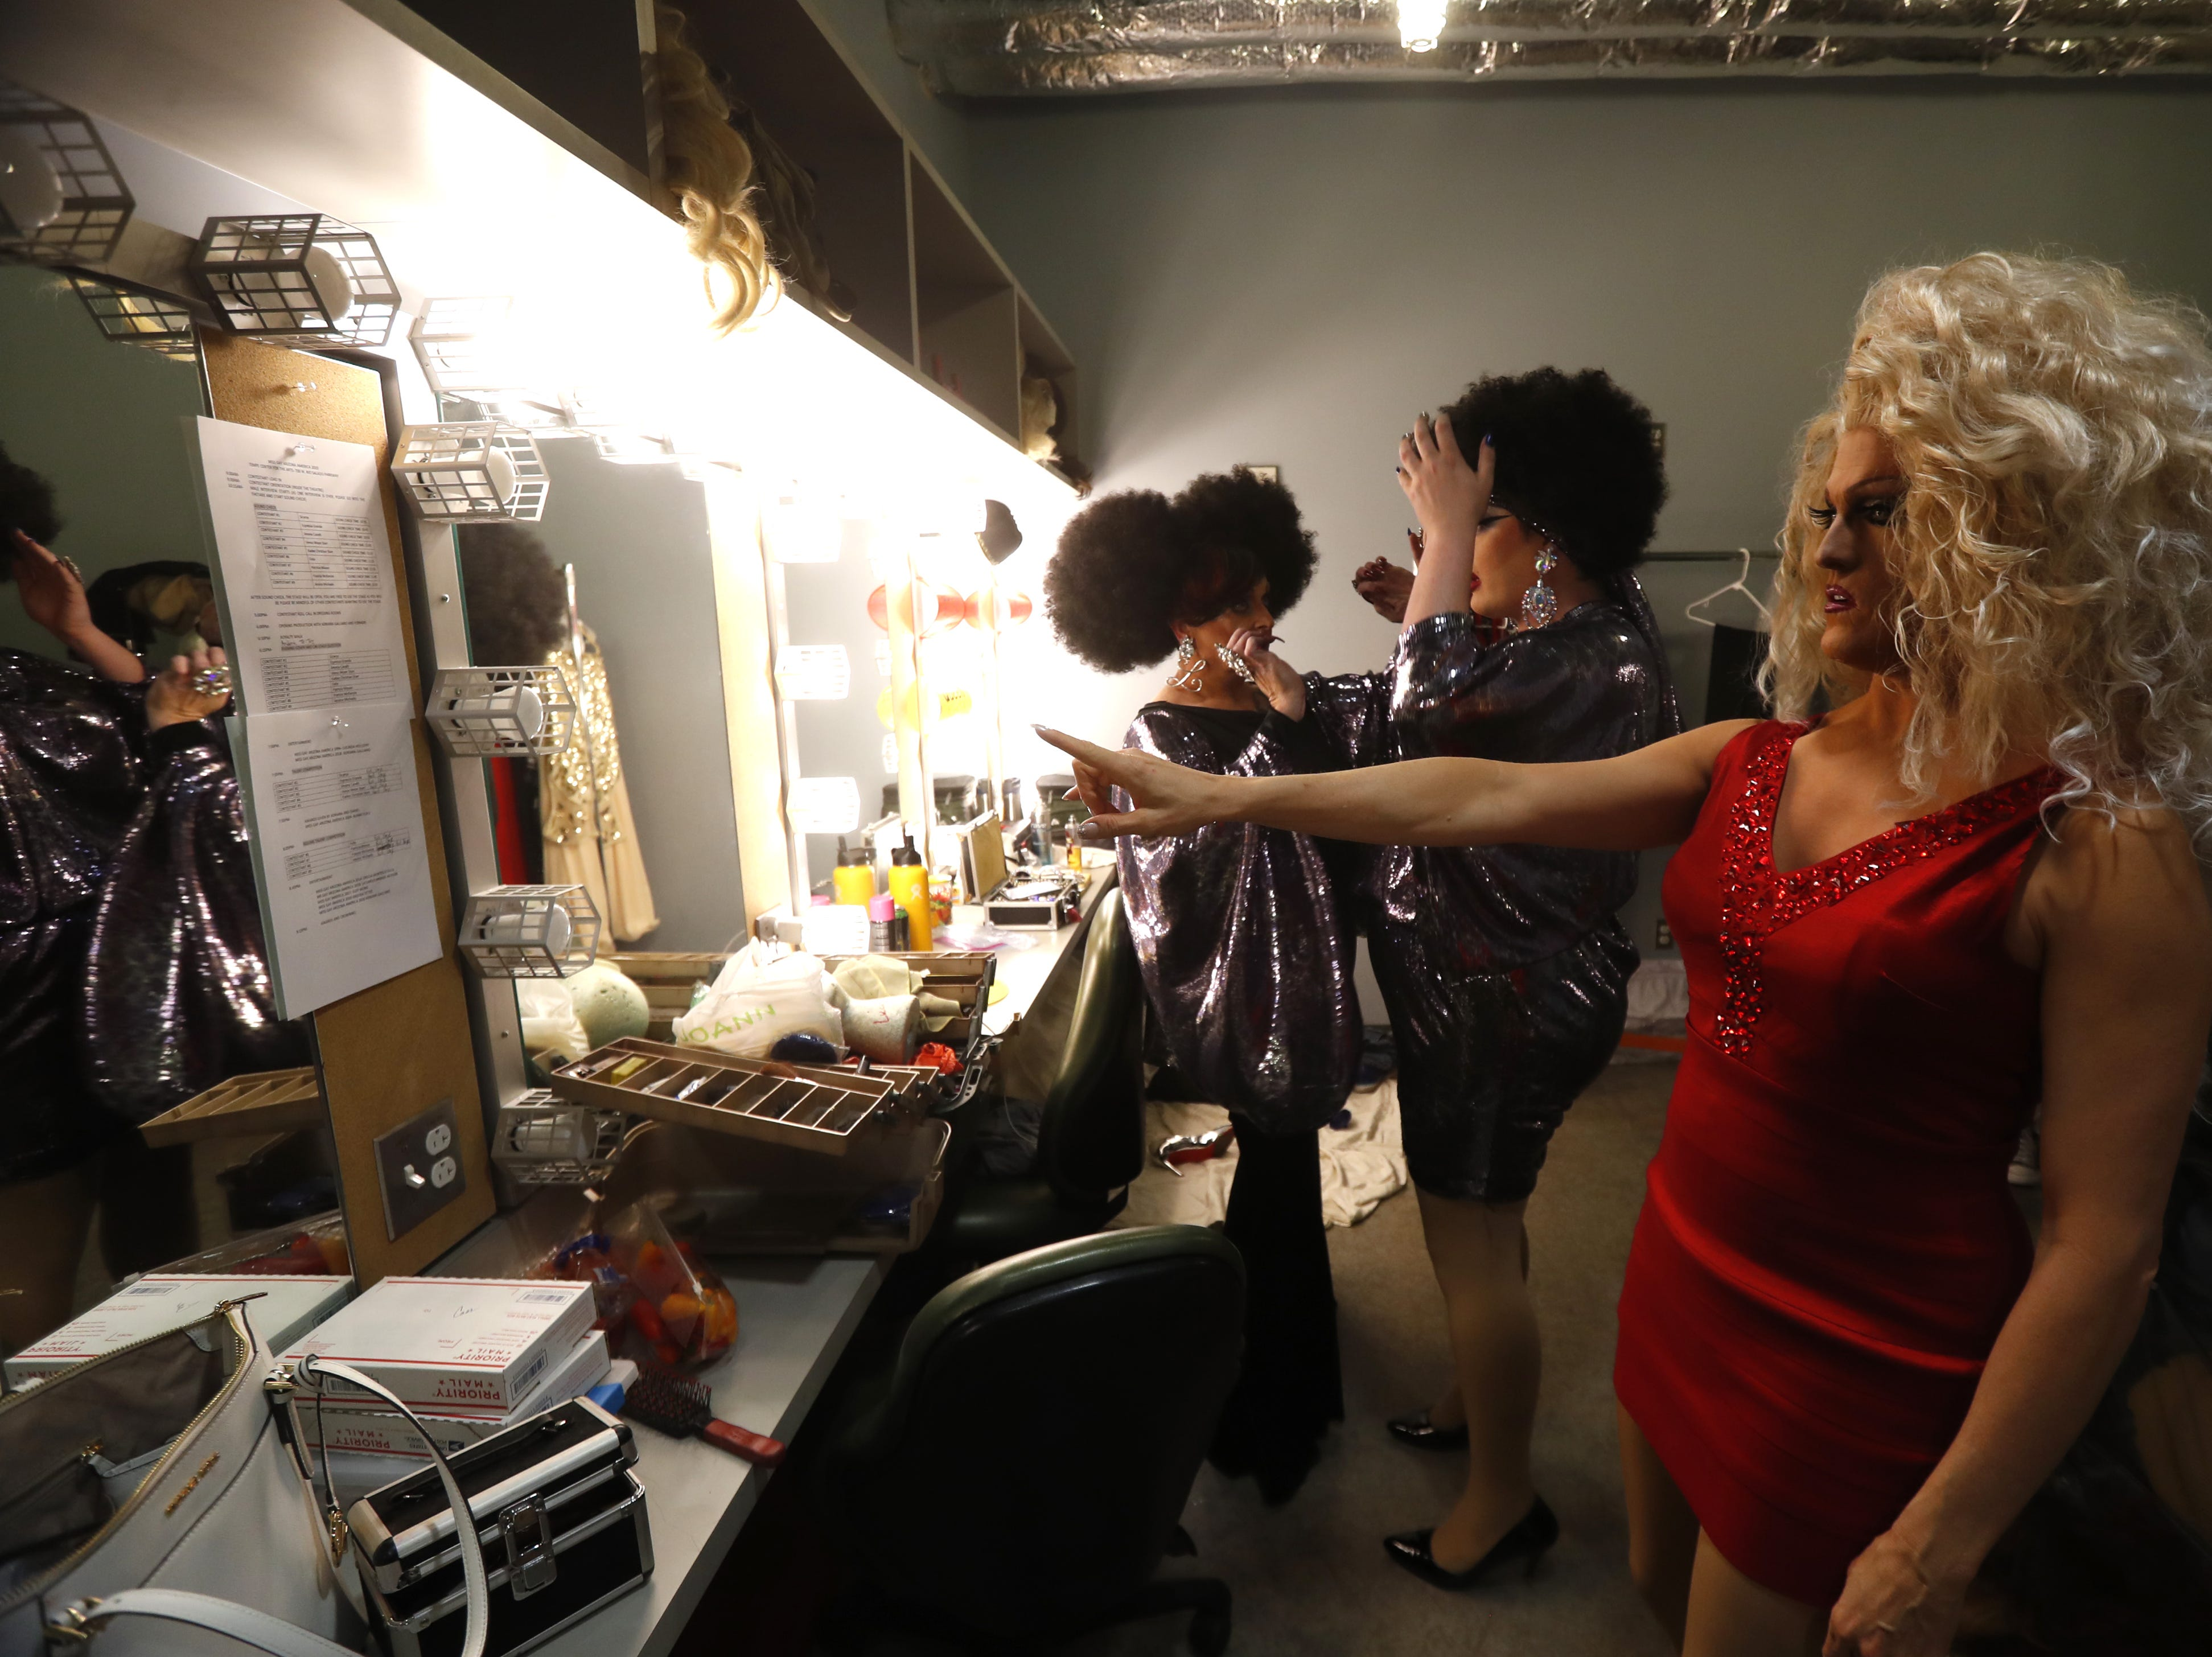 Lucinda Holliday (left), Queerella Deville and Bunny Fu Fu (right) prepare backstage for their performances during the Miss Gay Arizona America pageant 2019 at Tempe Center for the Arts on May 11, 2019.